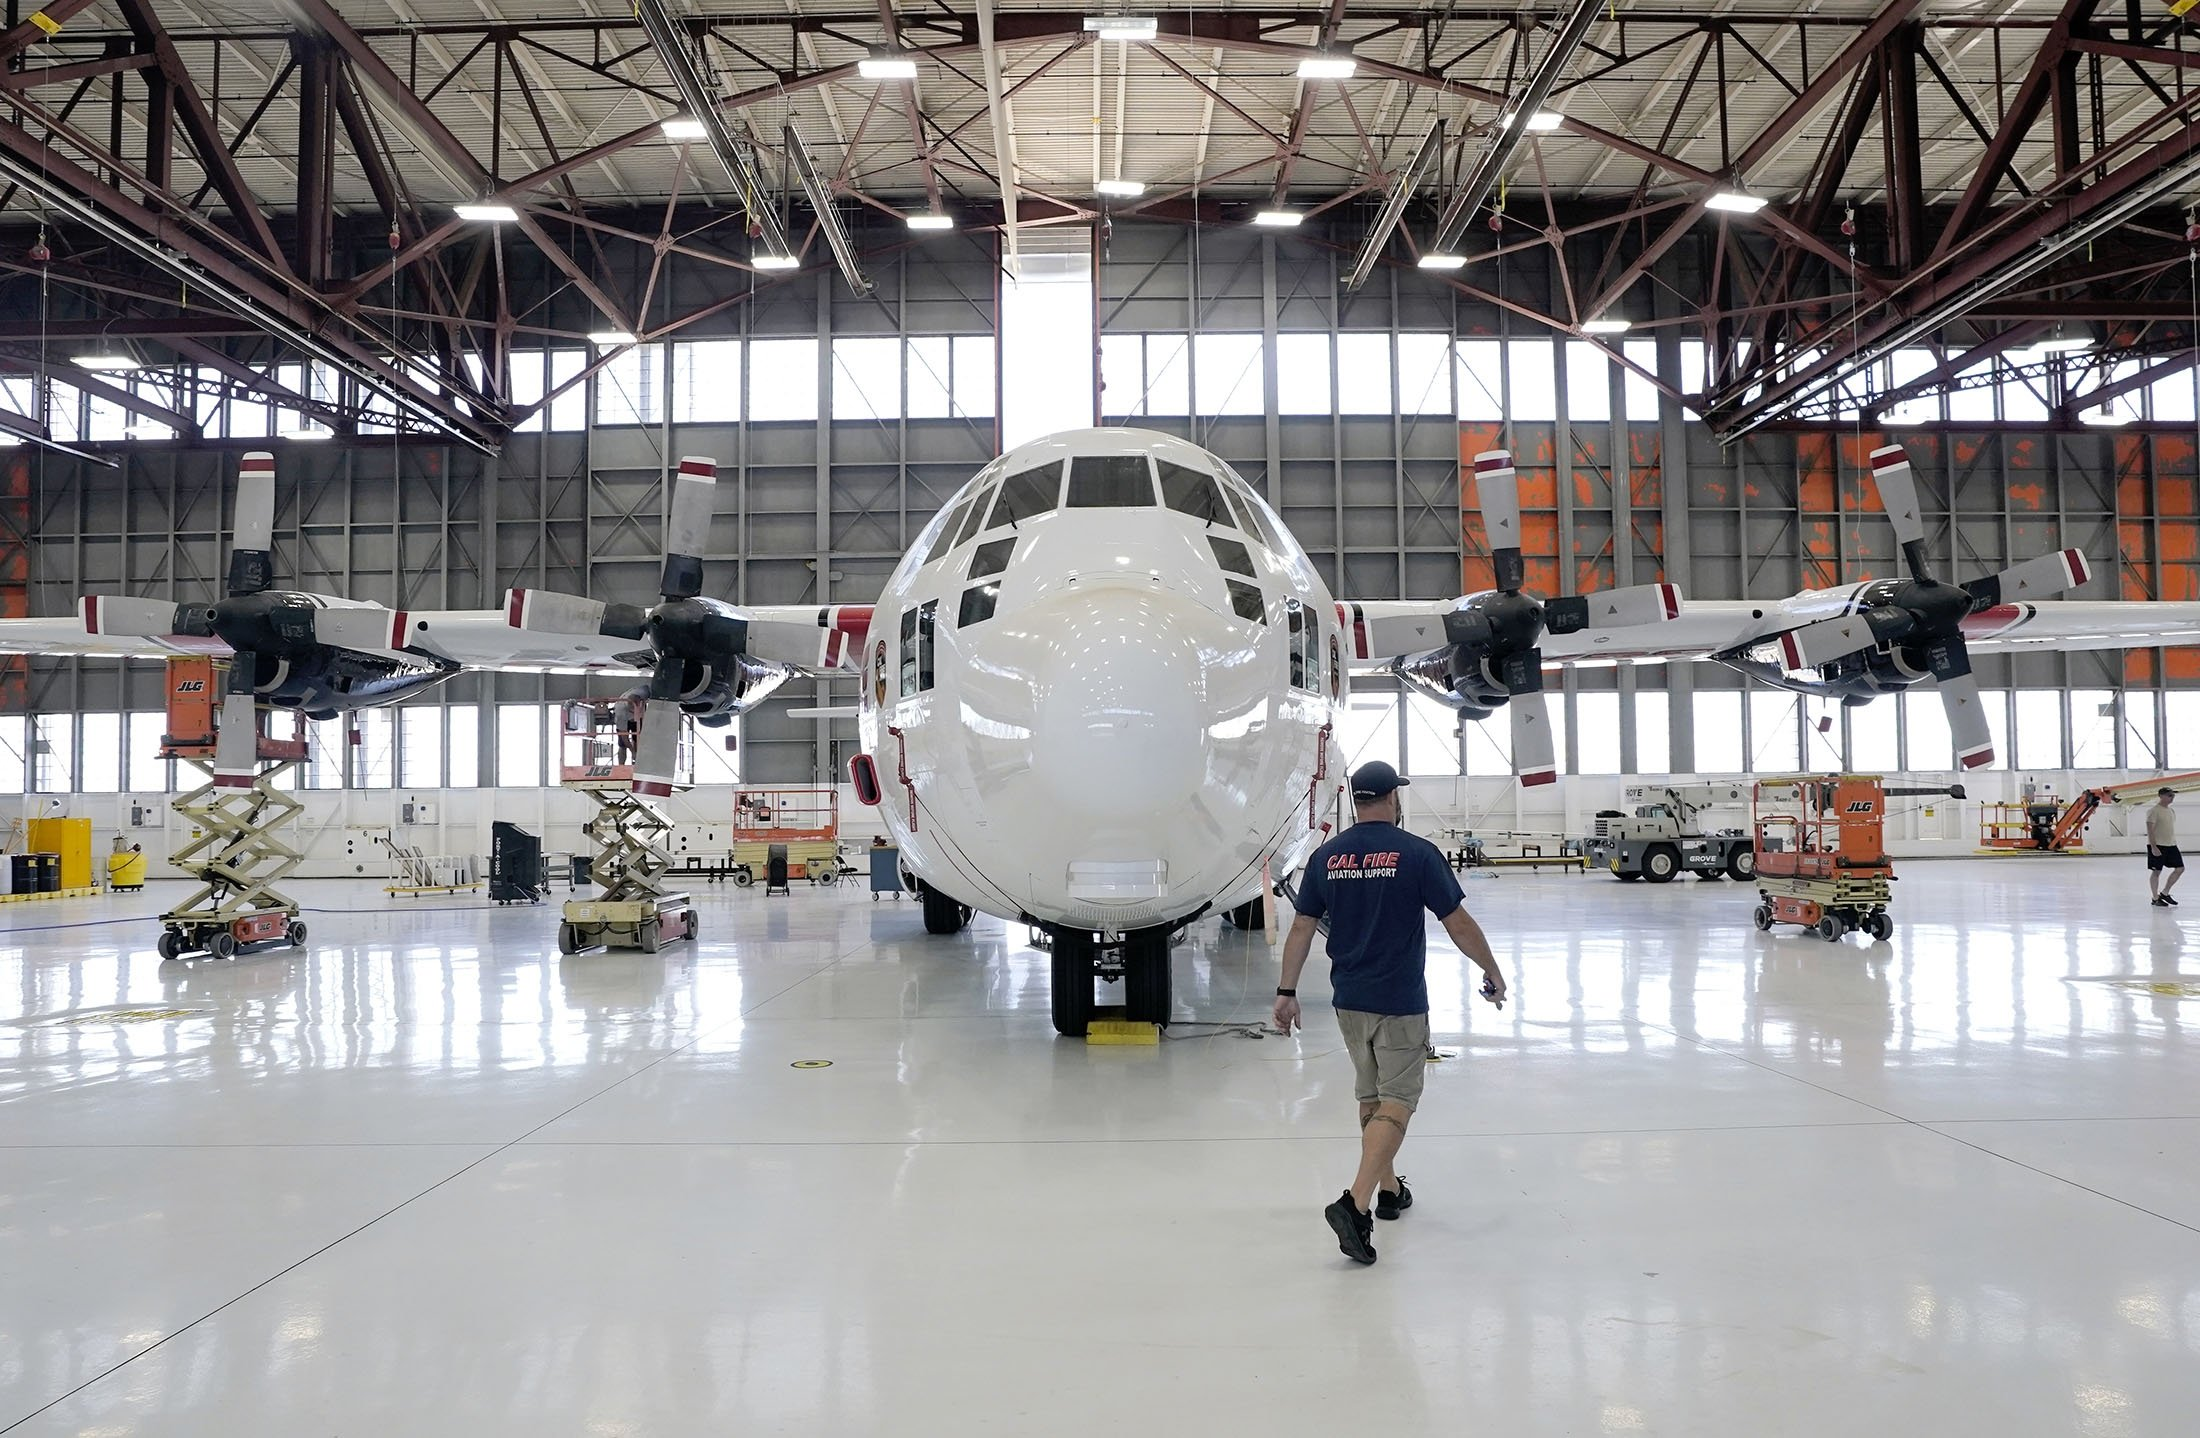 Aircraft Mechanic Cody Poole walks past one of the recently acquired C-130 aircraft, hangared at McClellan Airpark in Sacramento, California, U.S., July 23, 2021. (AP Photo)